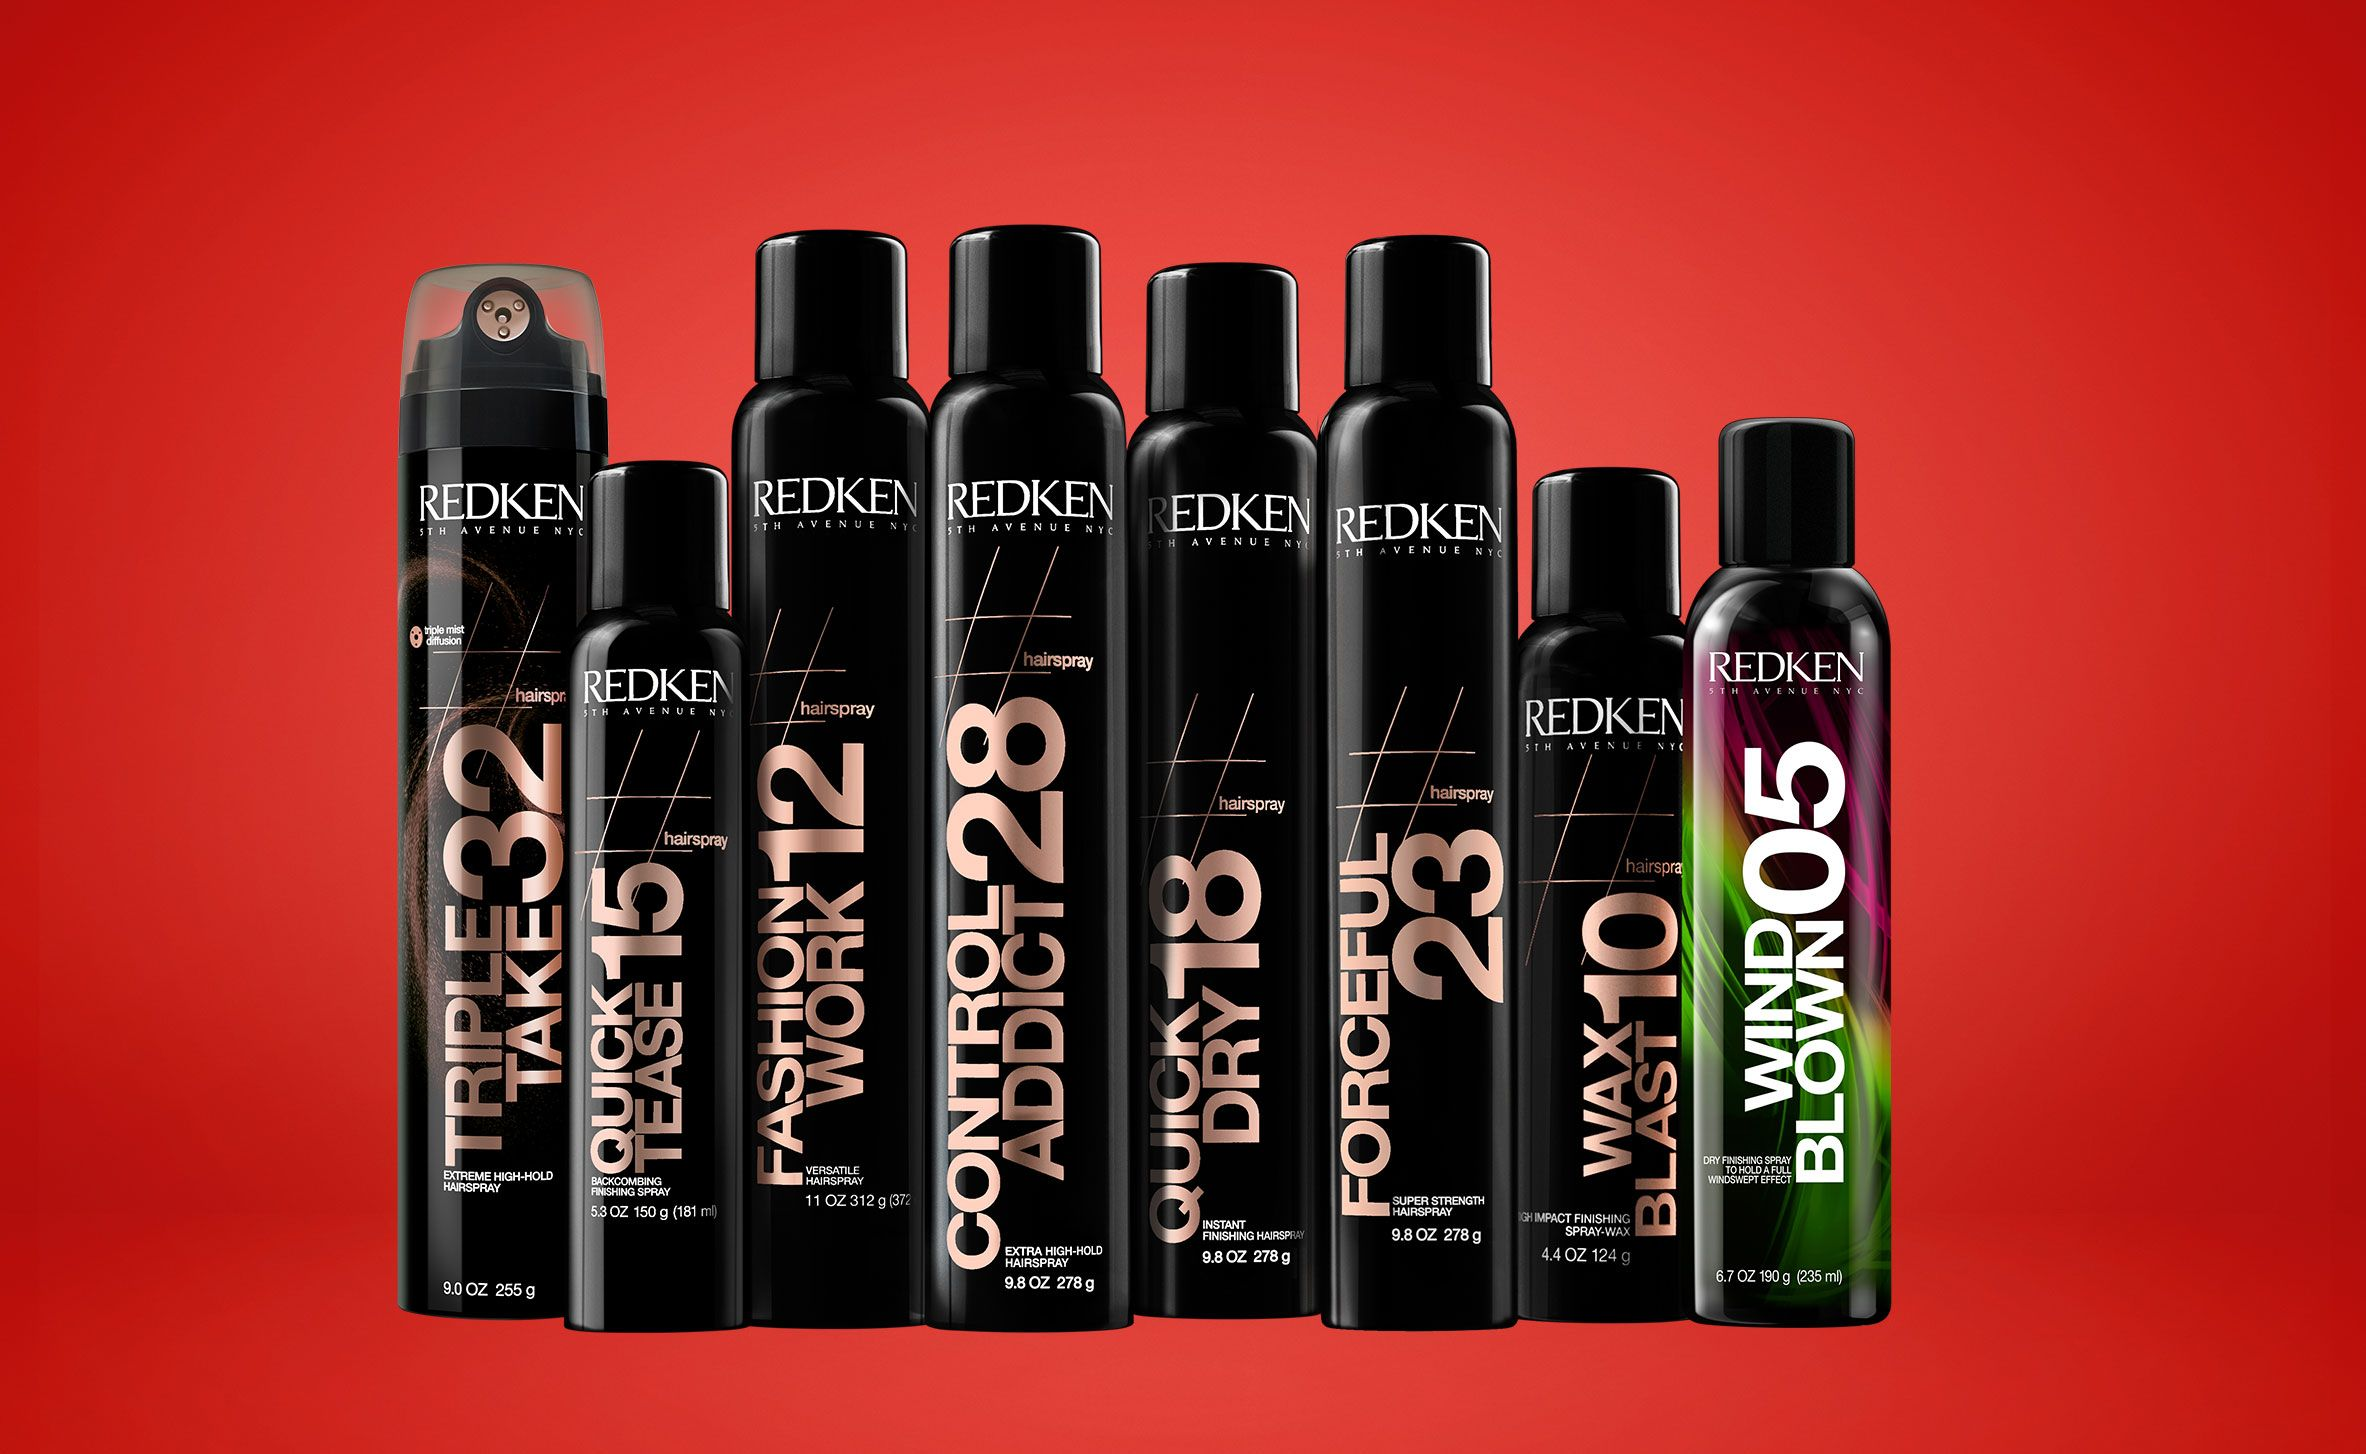 Redken 5th Avenue Nyc Hairspray Product Line Redken Redken